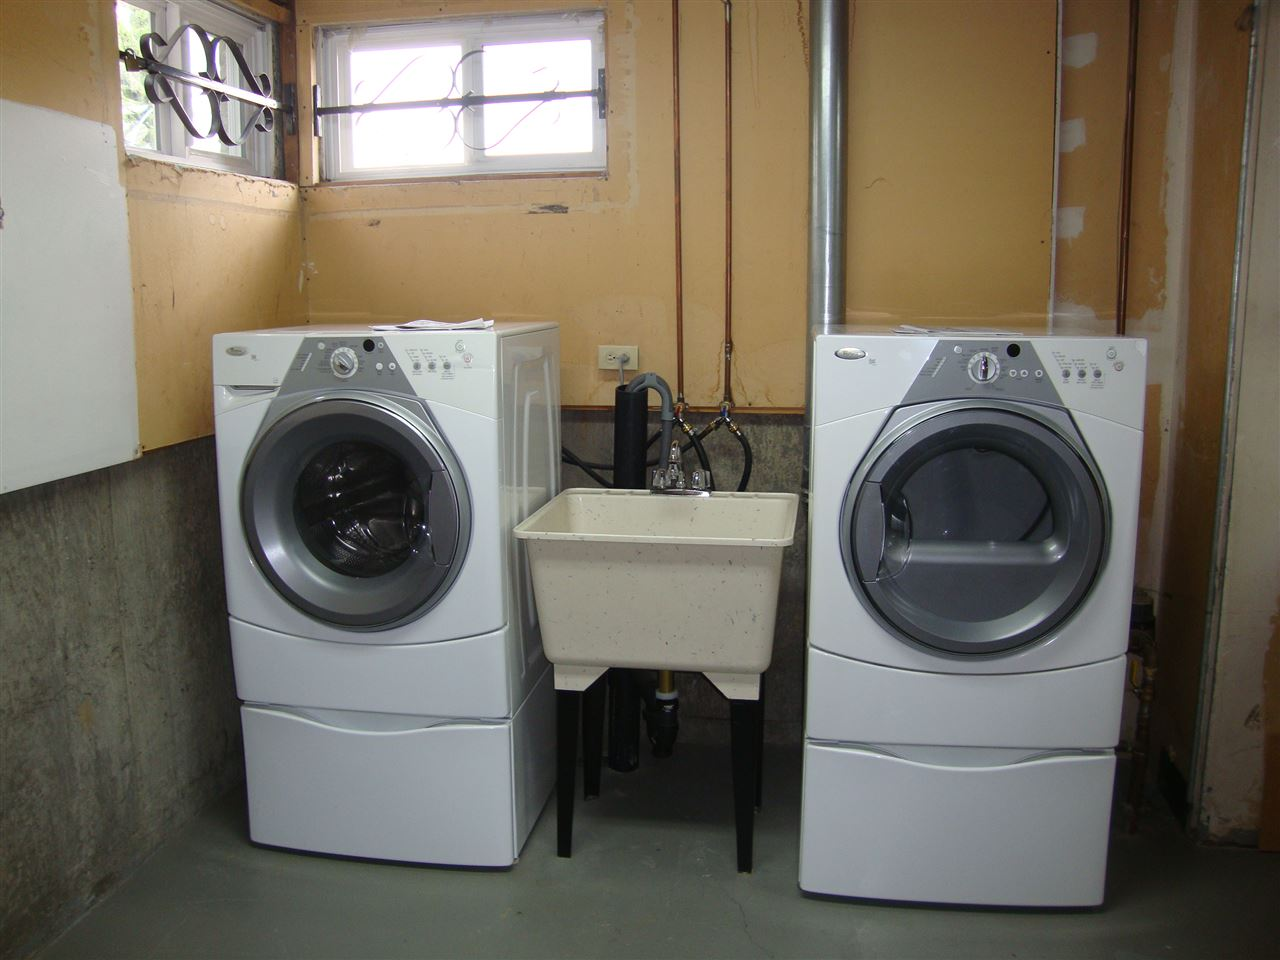 Laundry area in basement includes high efficiency front load washer & dryer, plus built in laundry sink.